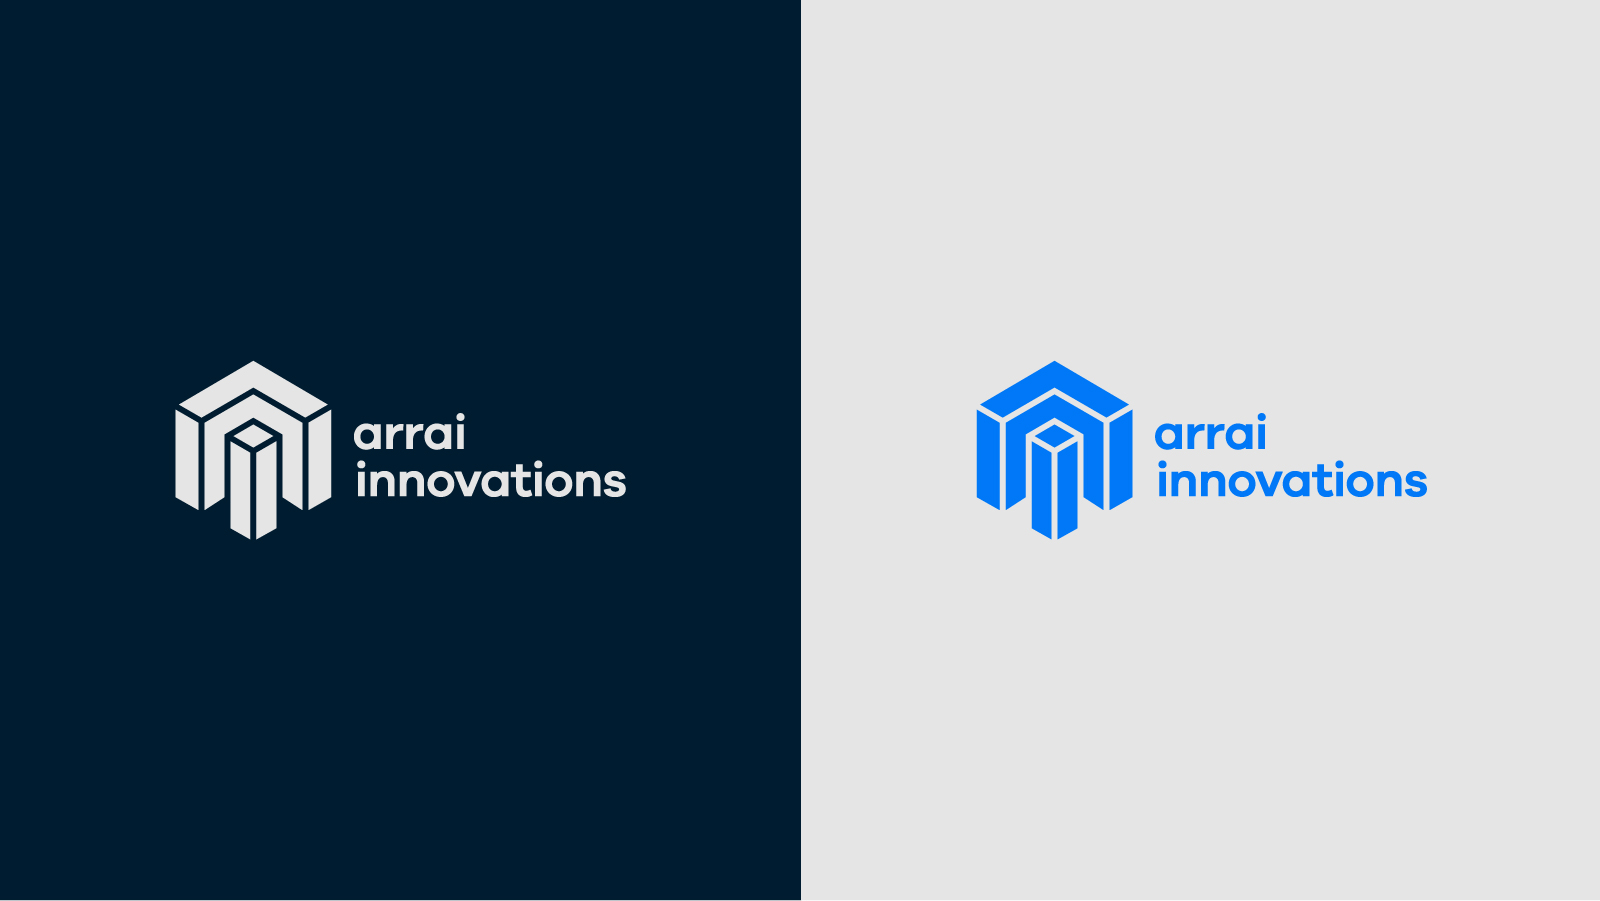 arrai_innovations_brand_themetportfolio-03.jpg